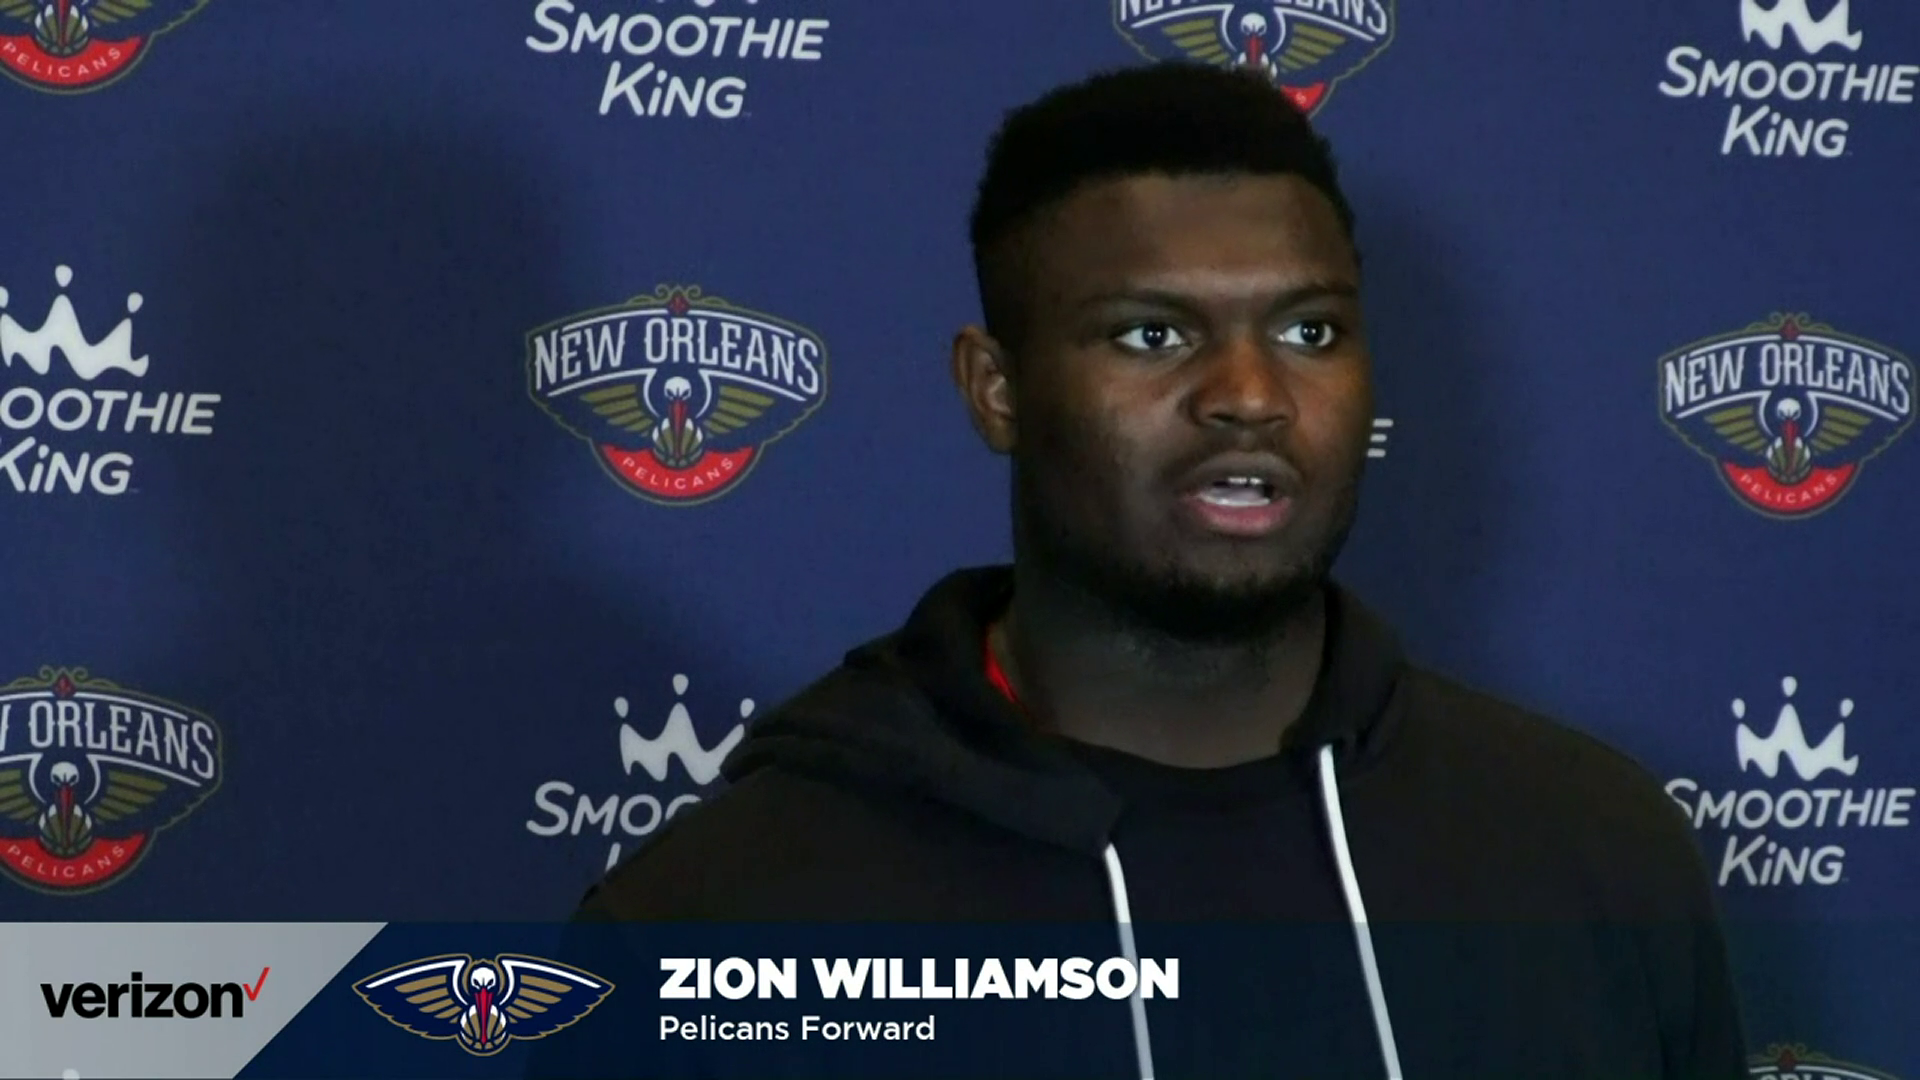 Pelicans-Knicks Postgame: Zion Williamson 4-14-2021